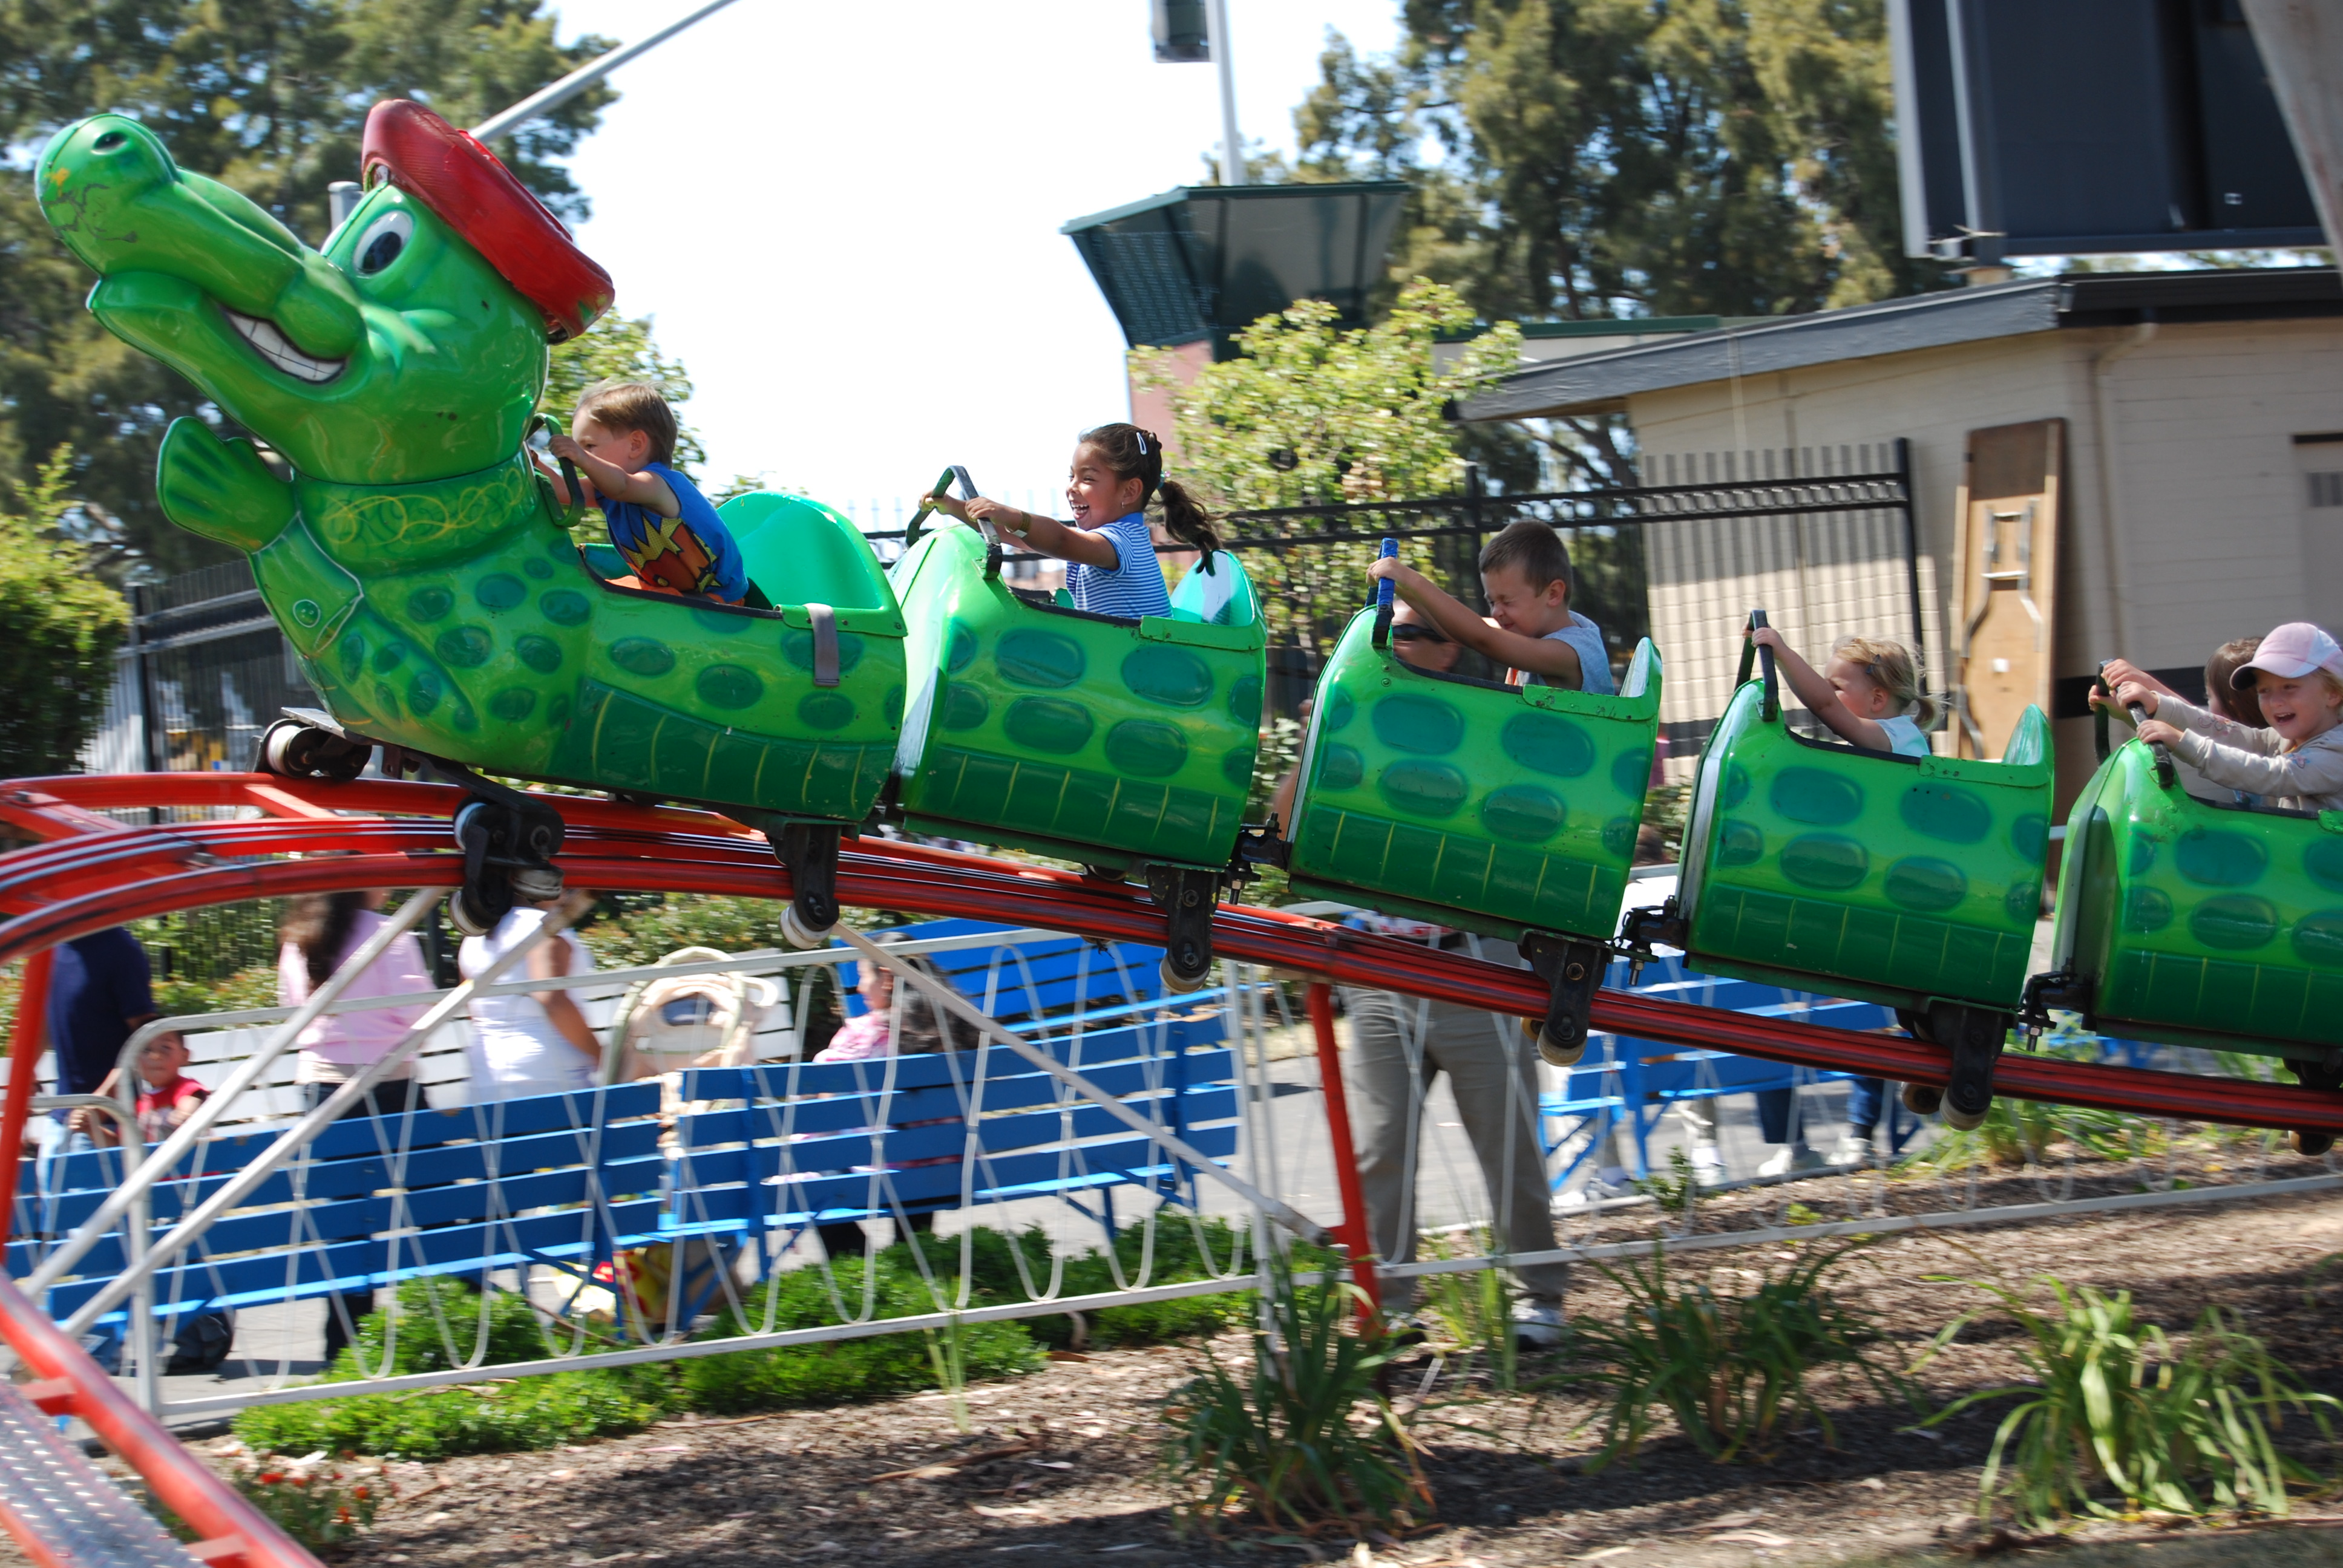 Alligator Coaster